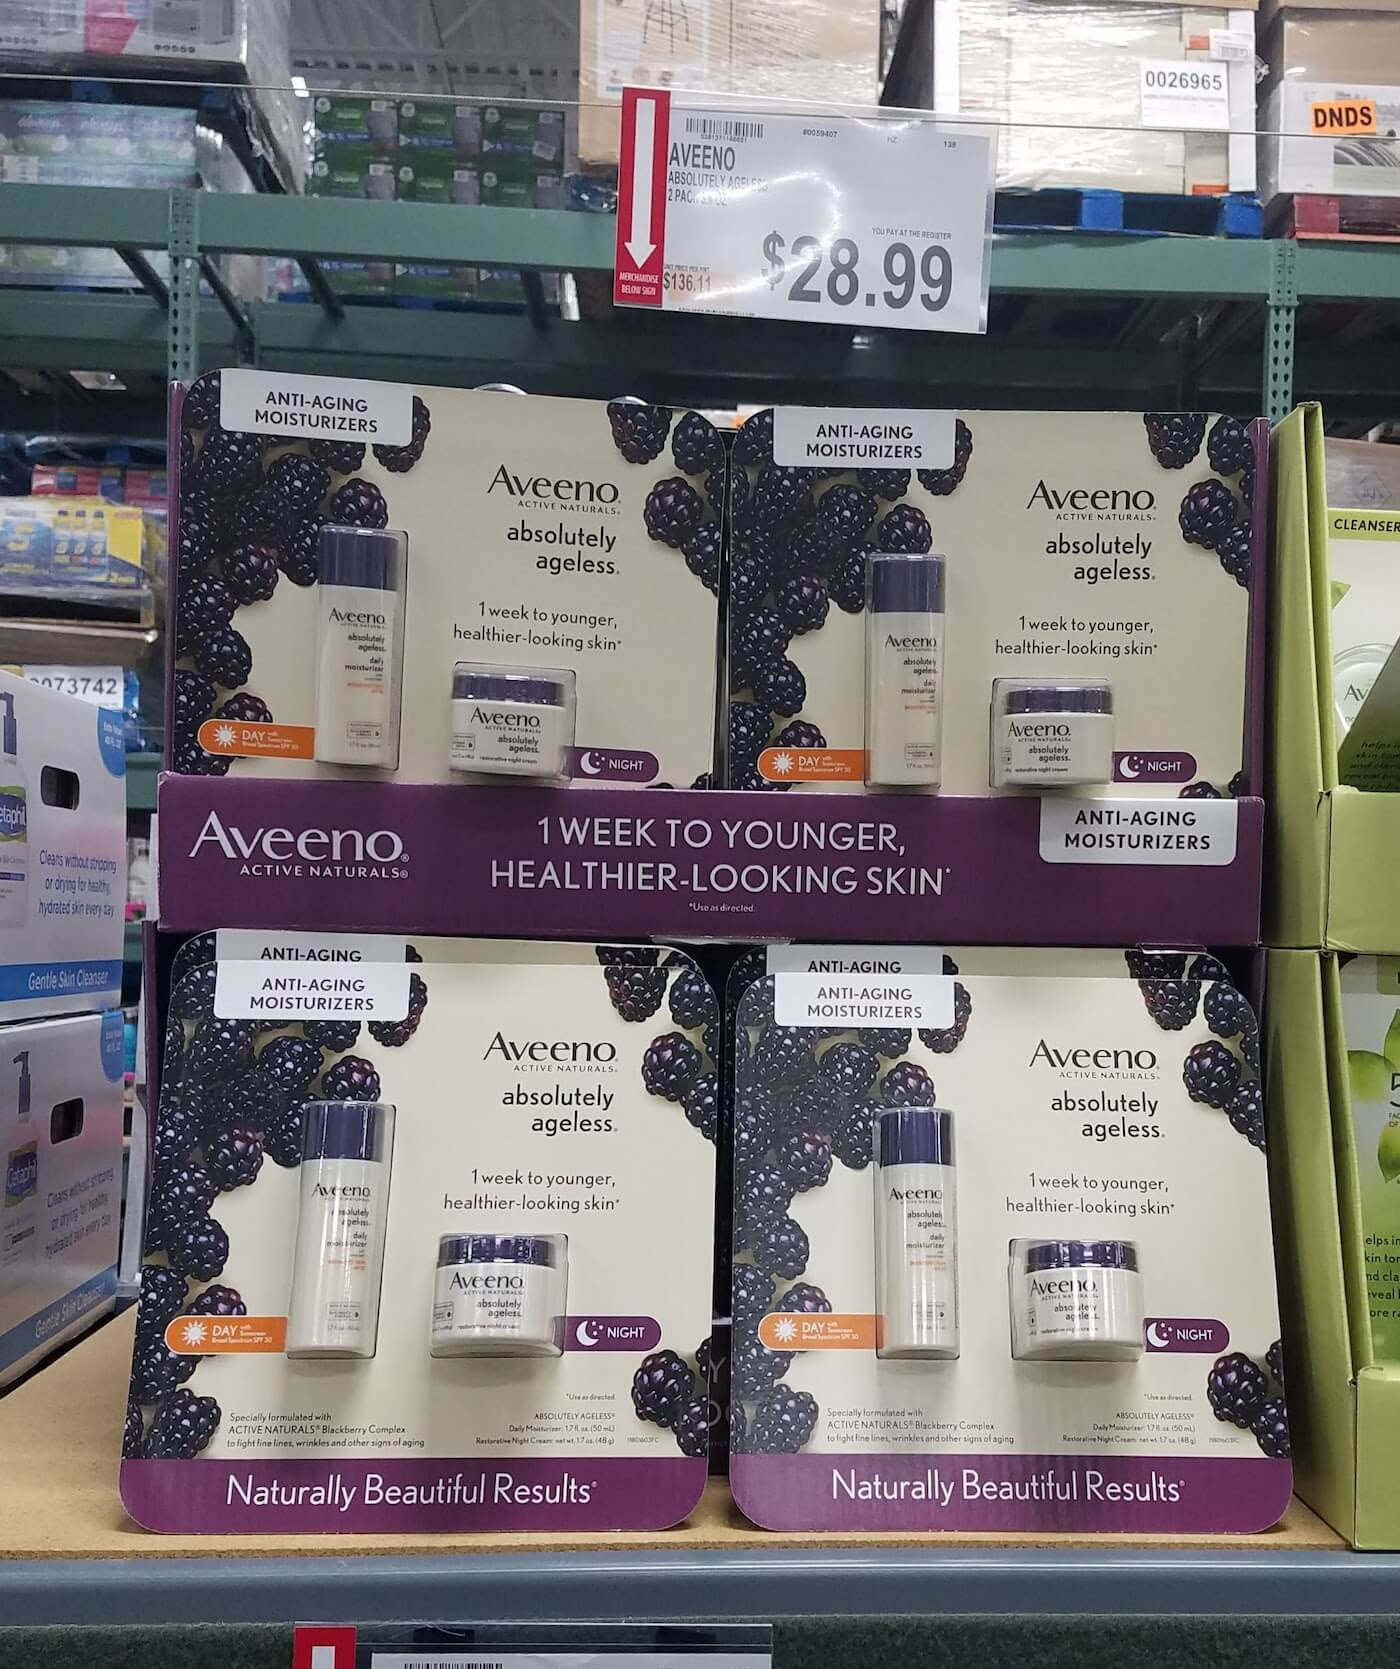 Aveeno Absolutely Ageless 2-pack moisturizer at BJ's: Is it